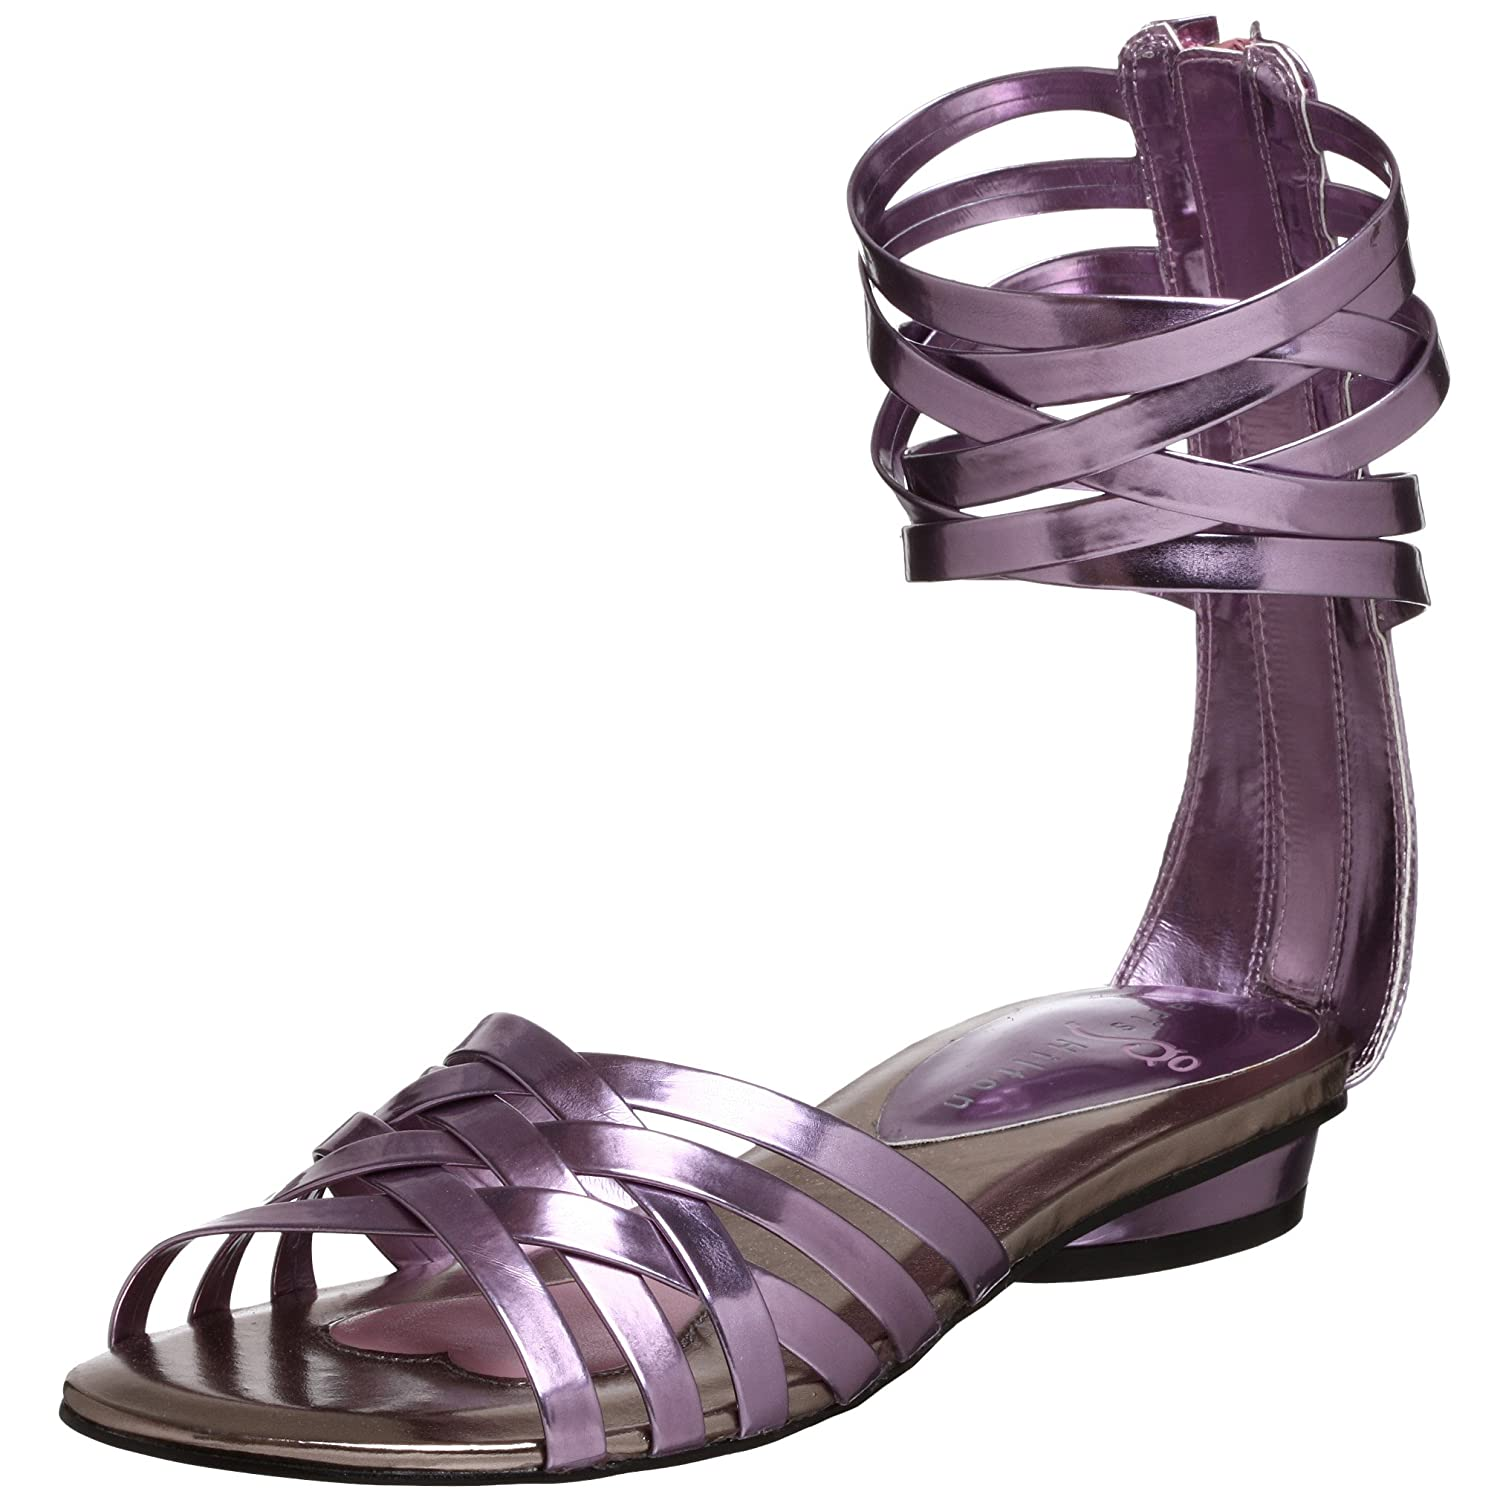 Endless.com: Paris Hilton Women's Goddess Gladiator Sandal: Categories - Free Overnight Shipping & Return Shipping